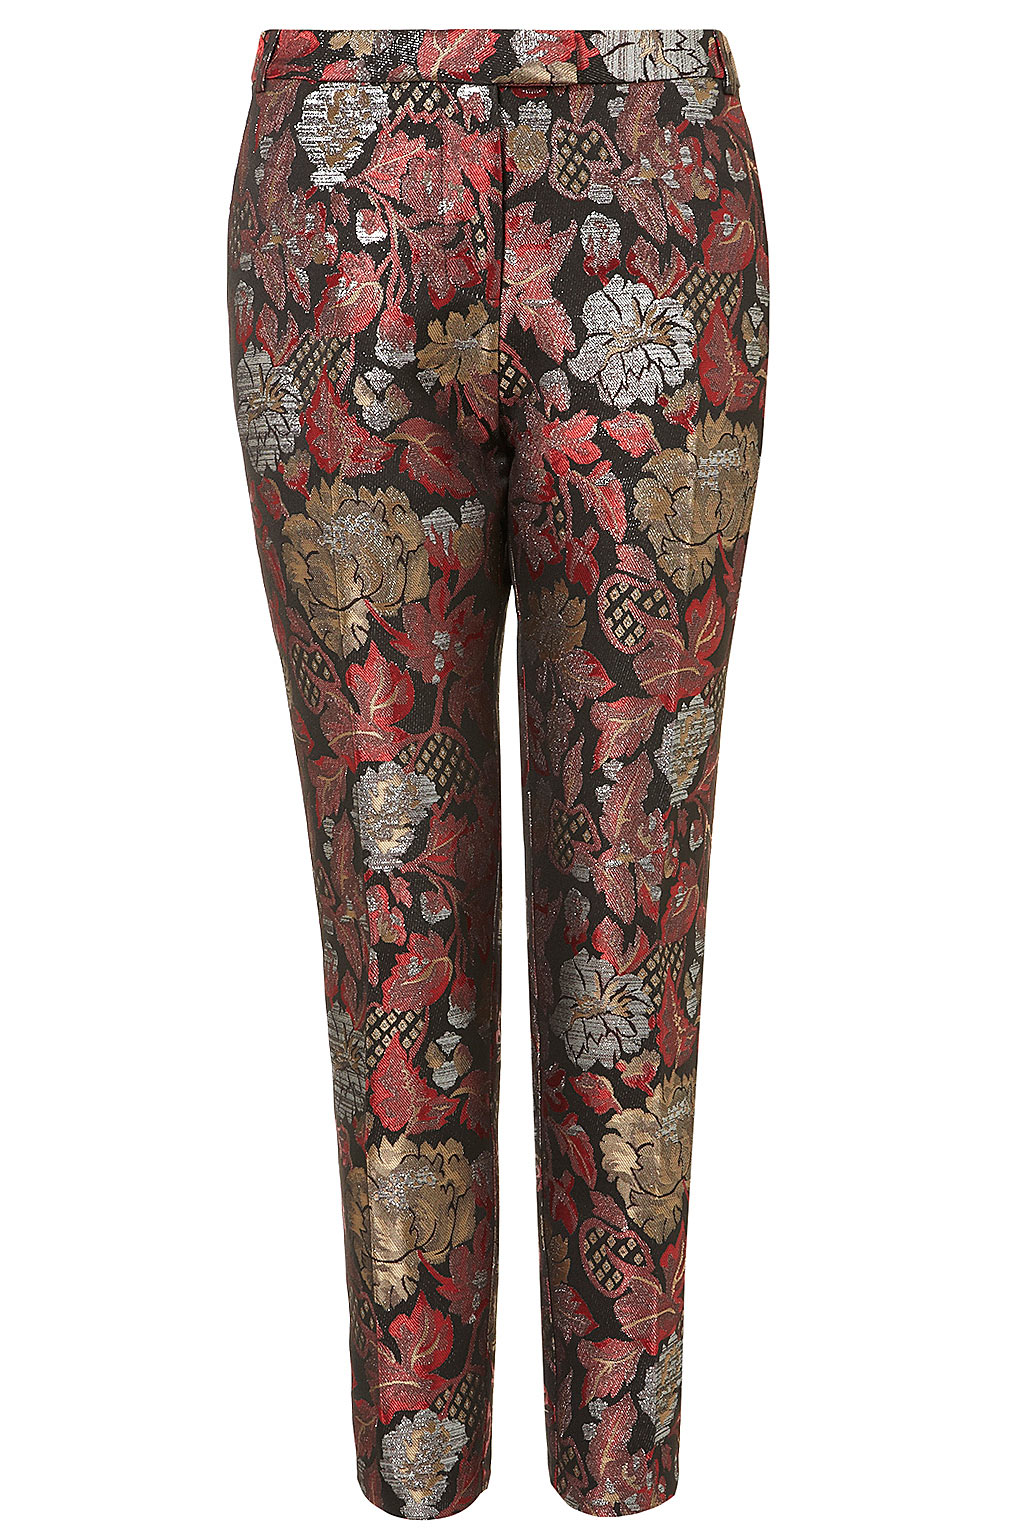 Lyst Topshop Chinoiserie Jacquard Cigarette Trousers In